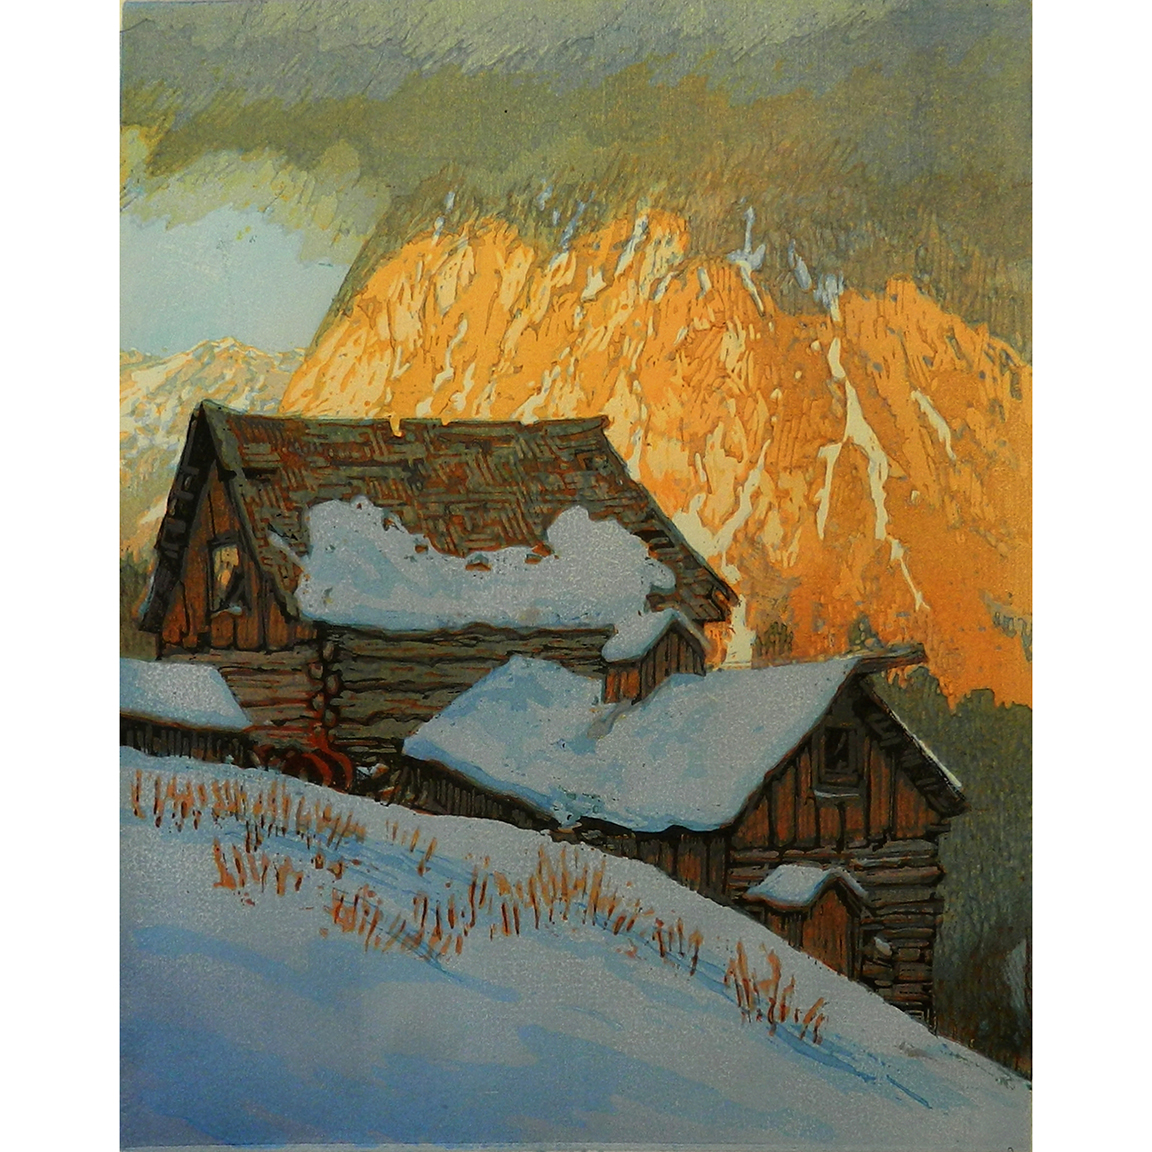 Contemporary Techniques for Moku Hanga with Leon Loughridge - Saturday, March 31, 201810:00 AM - 5:00 PMCost: $65 + $22 materials fee.Art Gym Denver1460 Leyden St., Denver, CO 80220